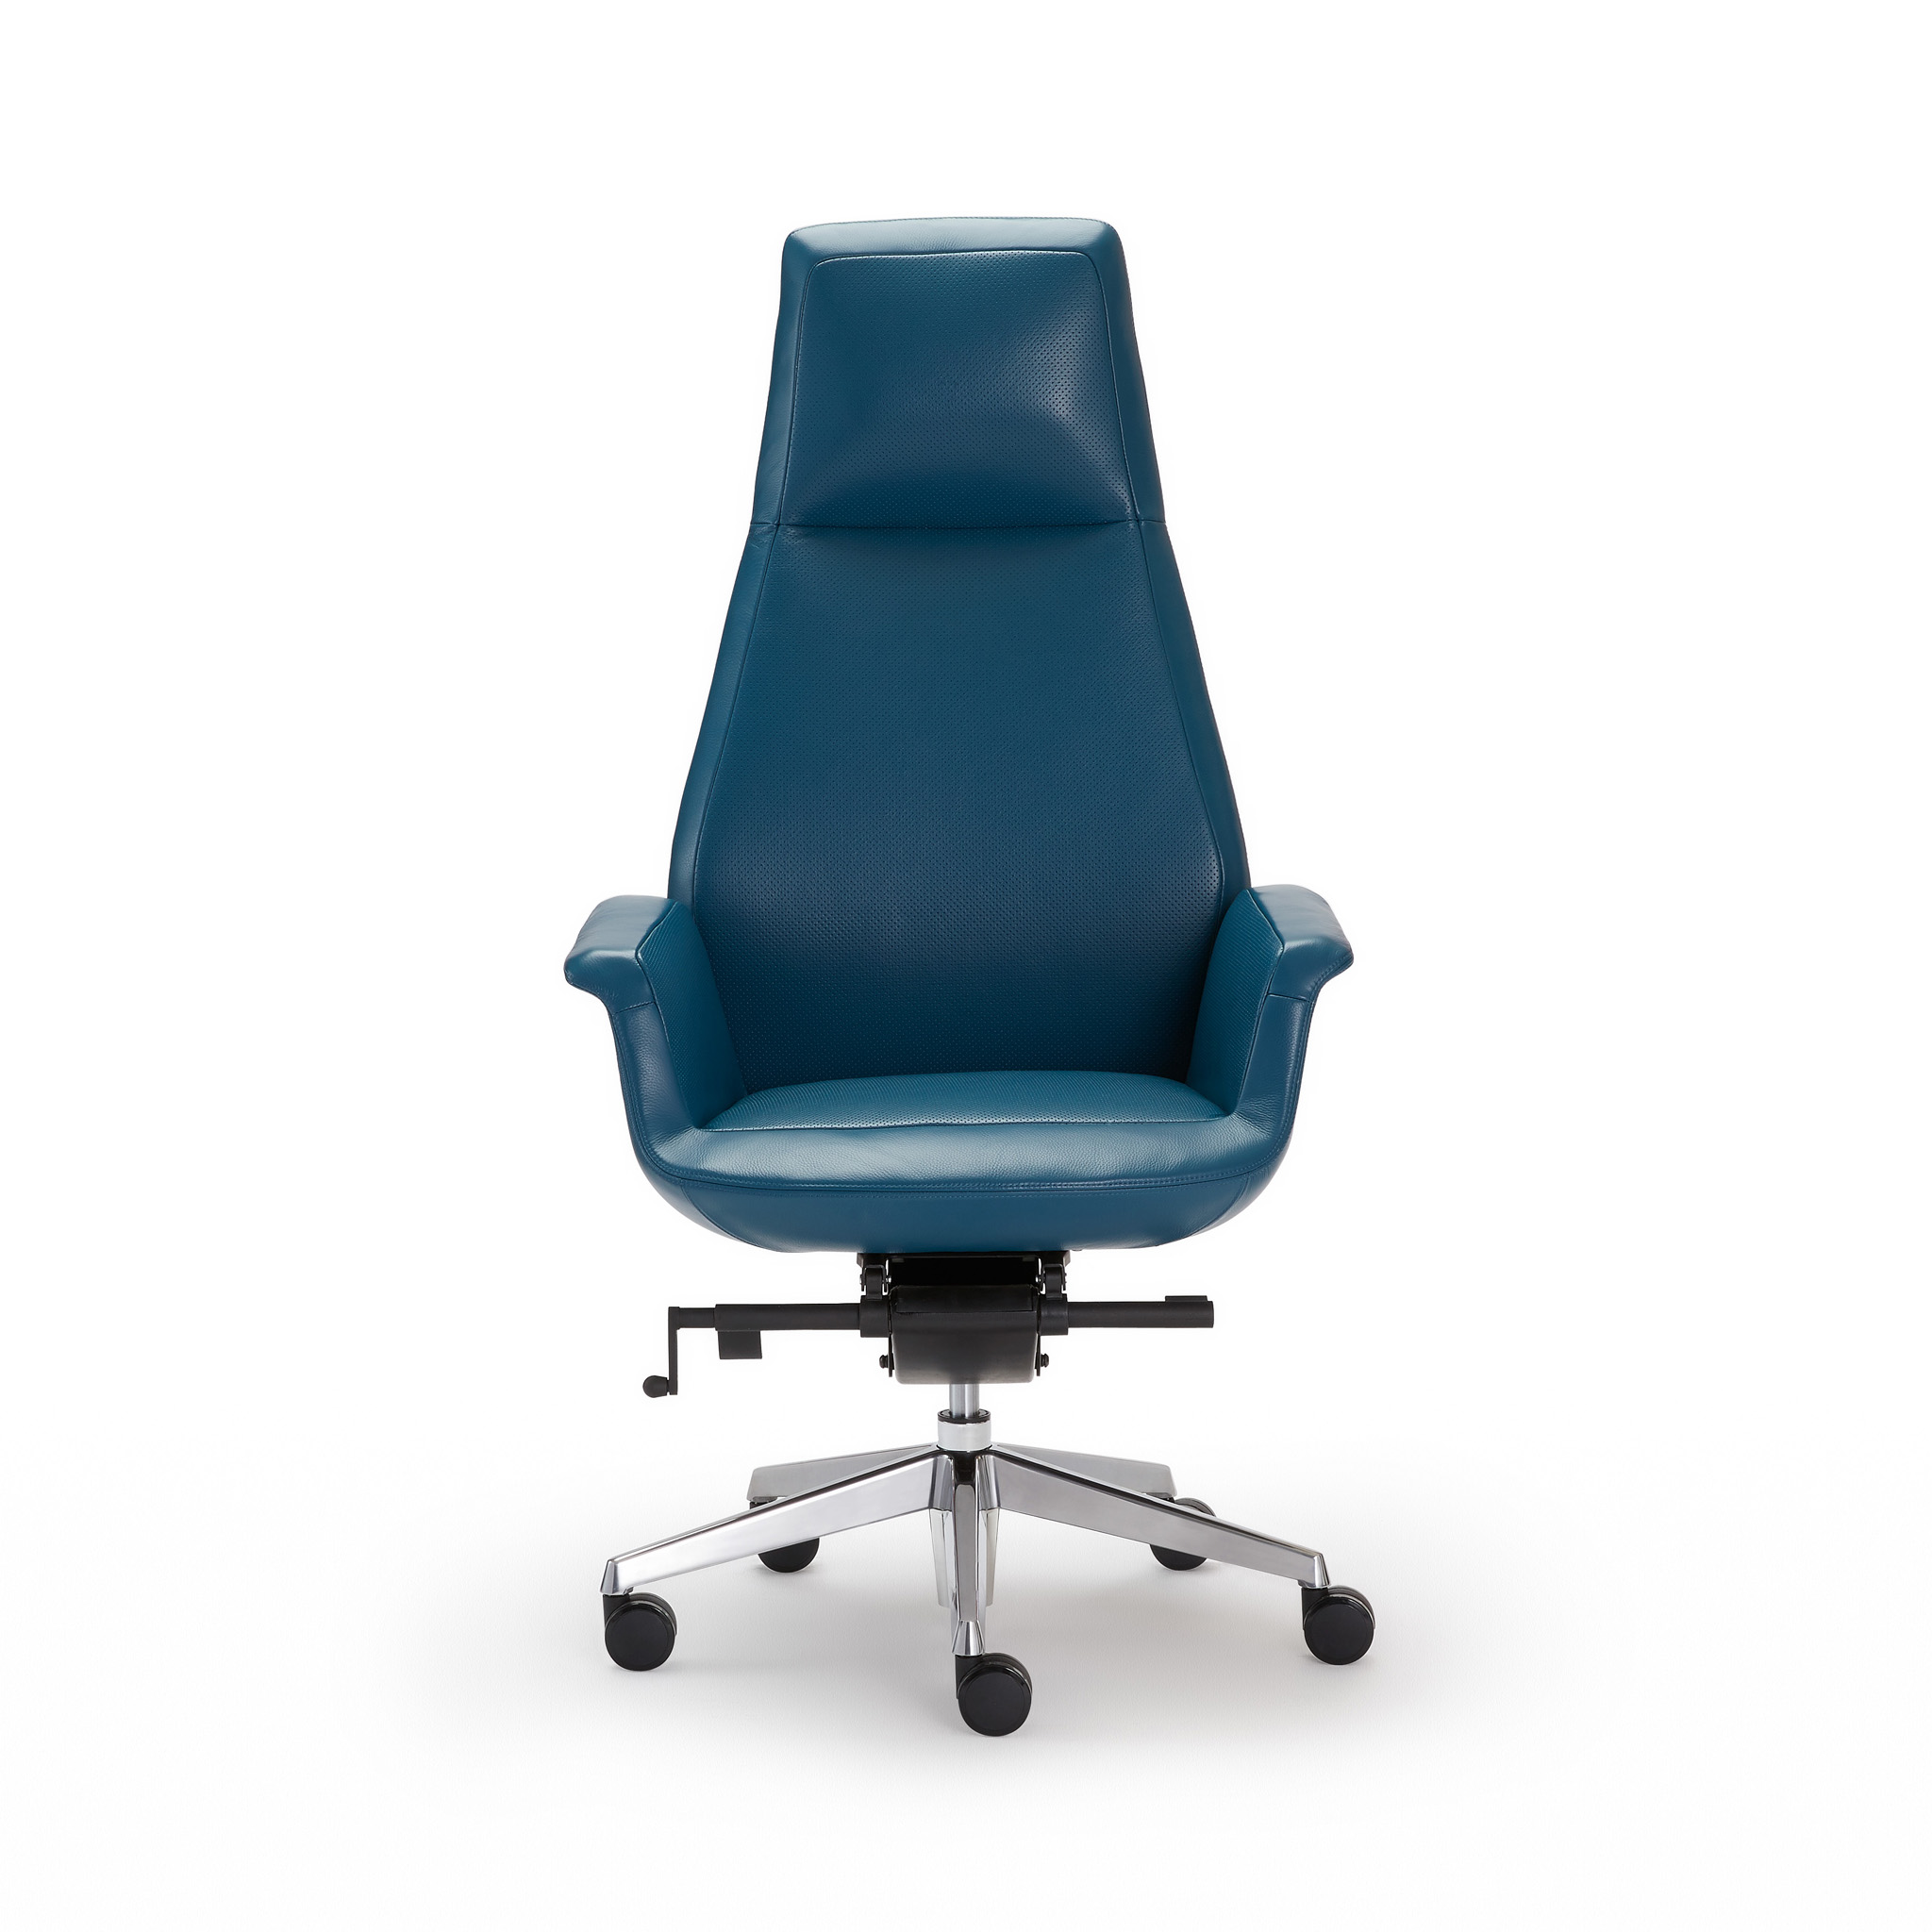 Incredible Executive Leather Desk Chair Blue Dailytribune Chair Design For Home Dailytribuneorg